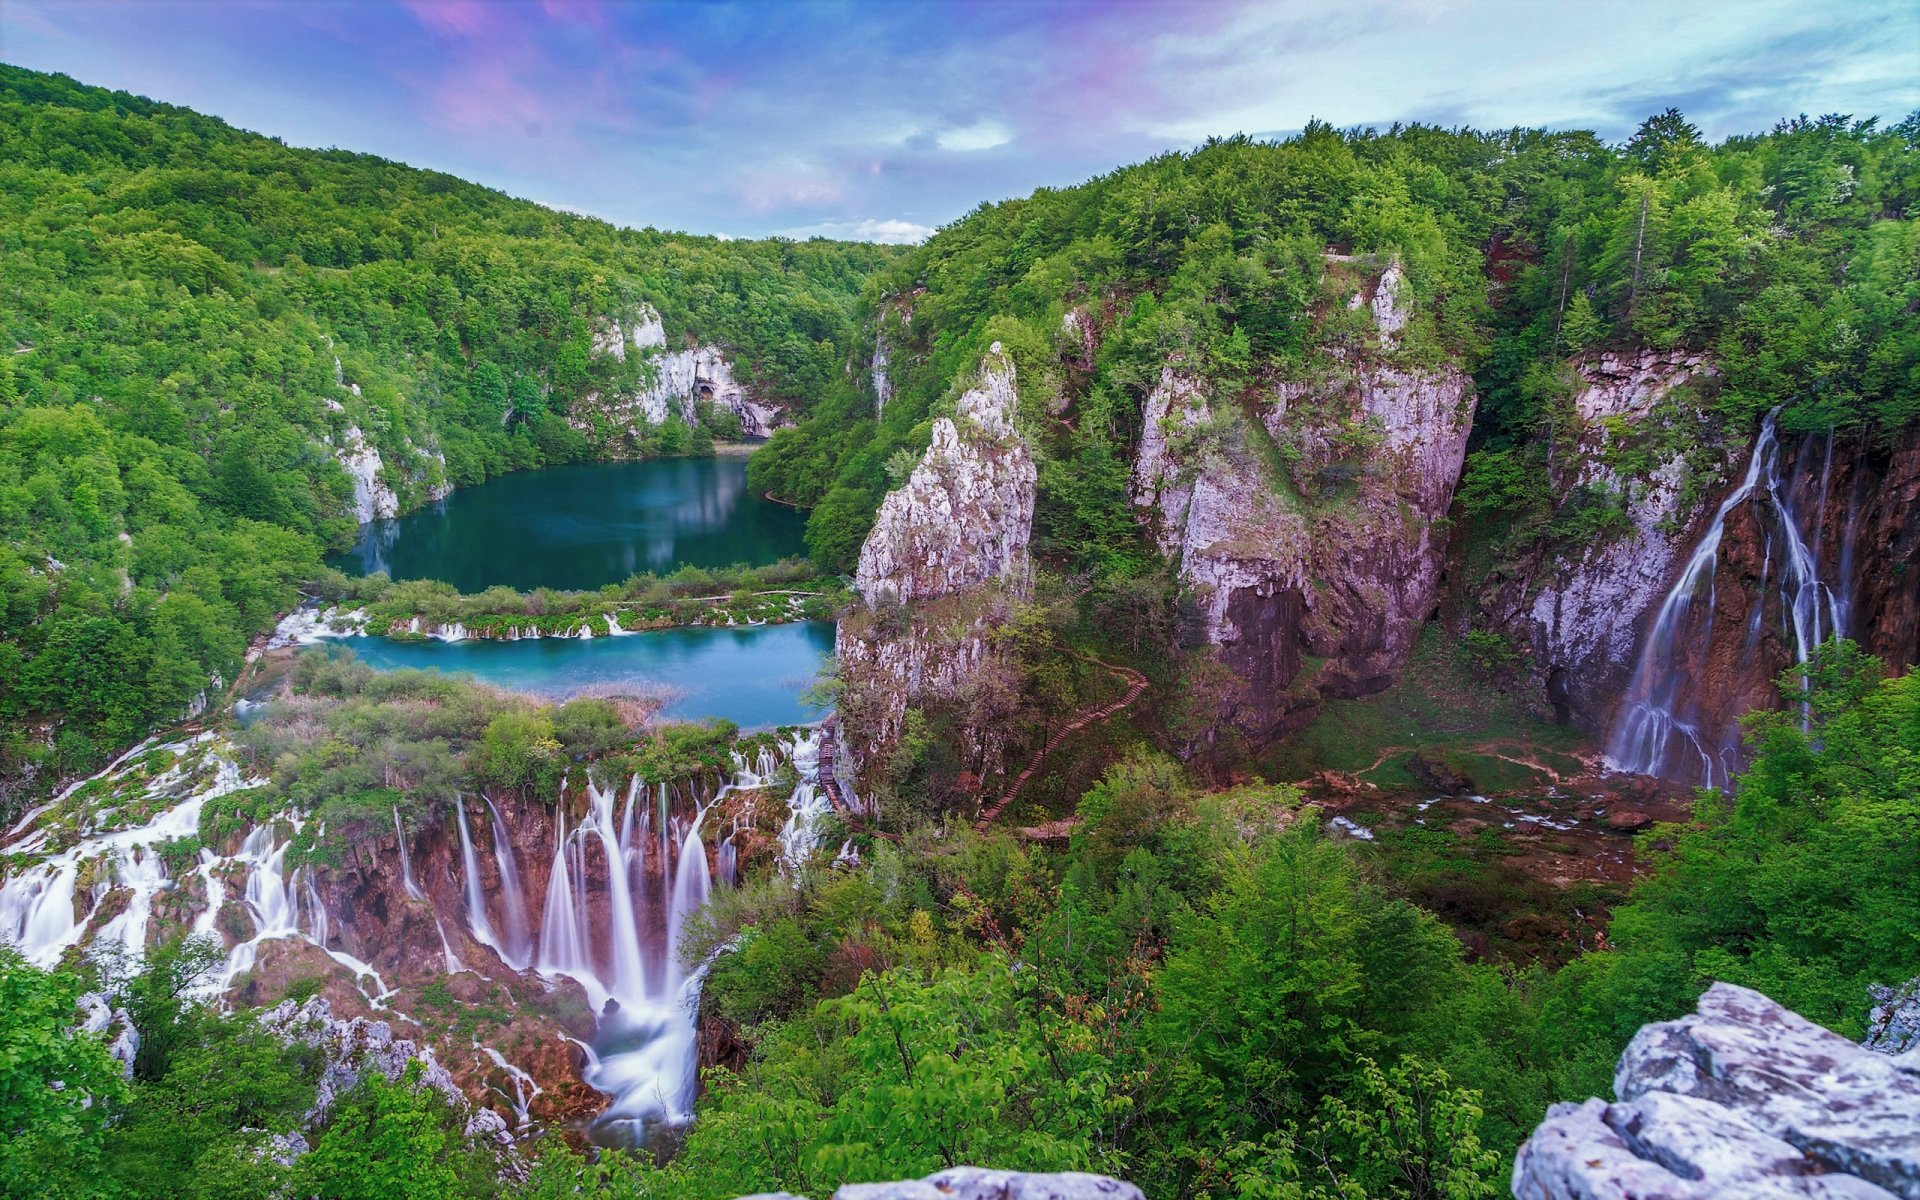 Plitvice falls in croatia hd wallpaper background image 2560x1600 id 903087 wallpaper abyss - Plitvice lakes hd ...